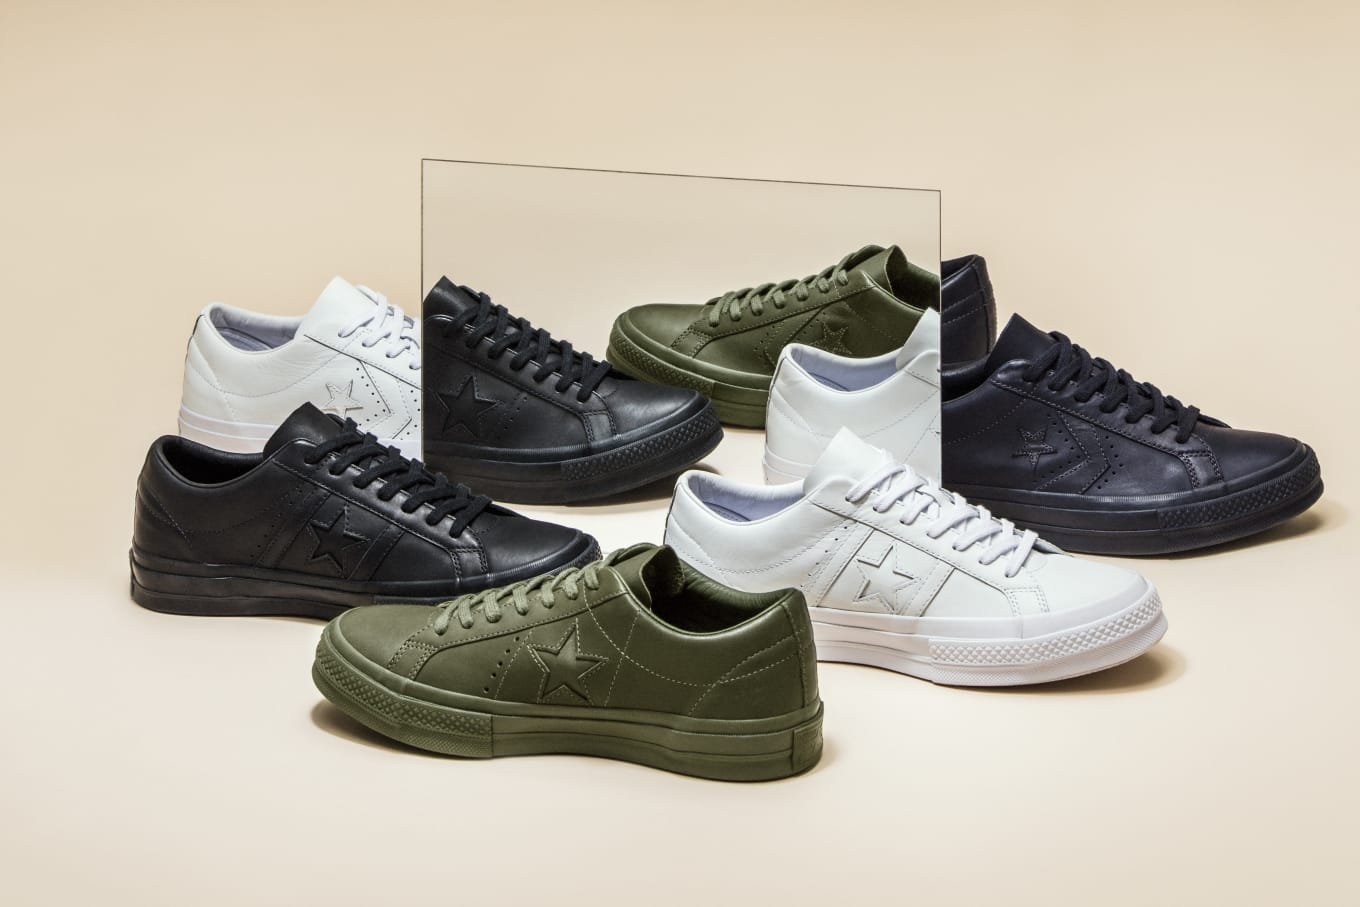 low priced eb99a f48cb Converse x Engineered Garments One Star collection releases Oct. 4.